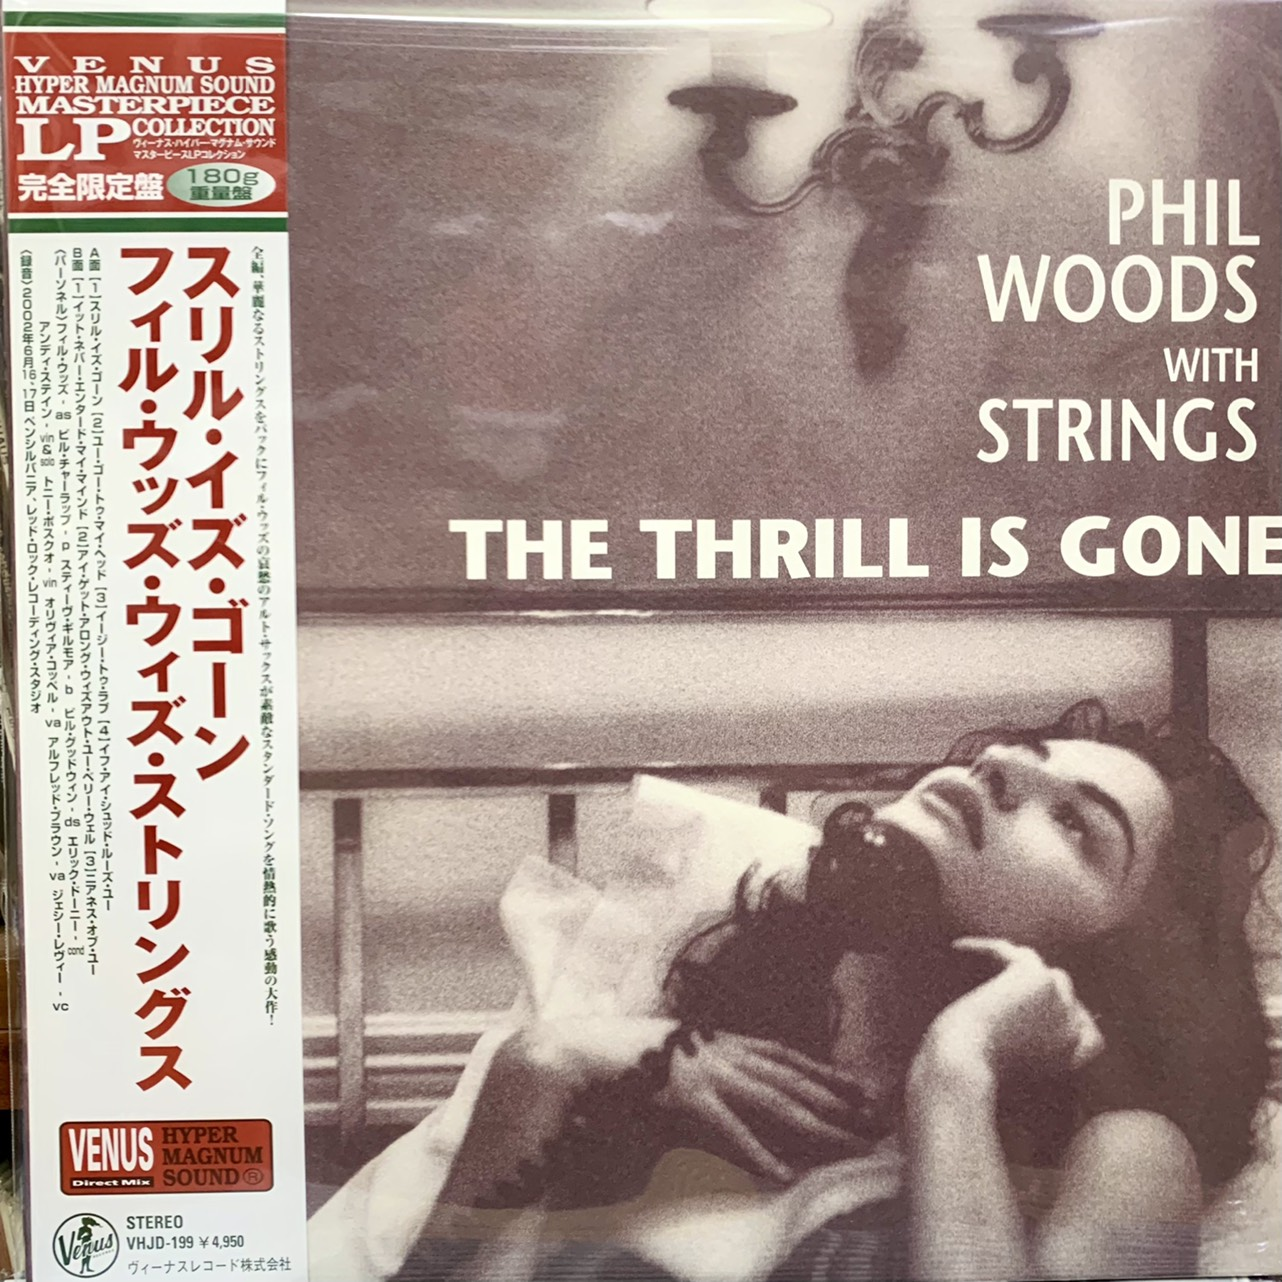 dia-than-vinyl-phil-woods-with-strings-the-thrill-is-gone